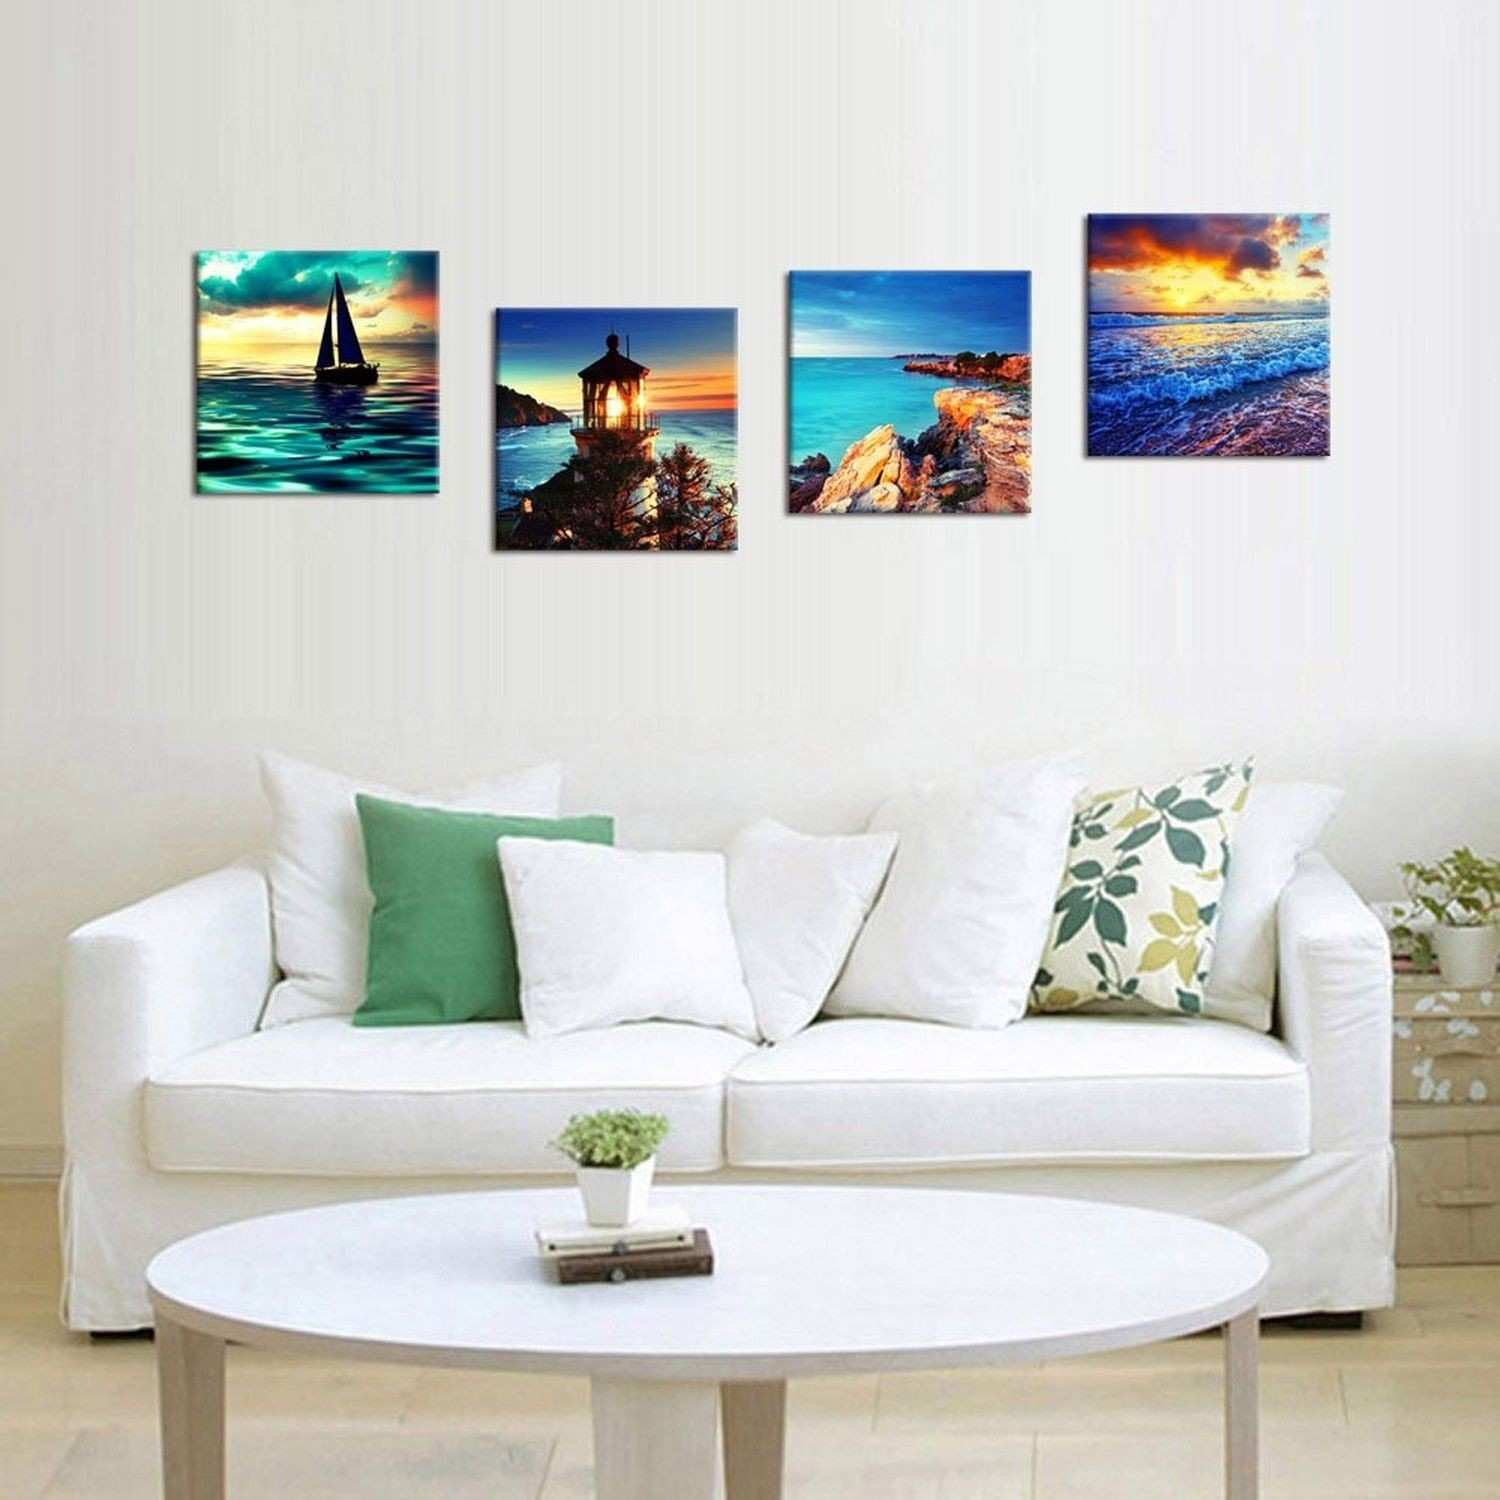 4 Pcs Framed Home Decor Canvas Print Painting Picture Modern Wall